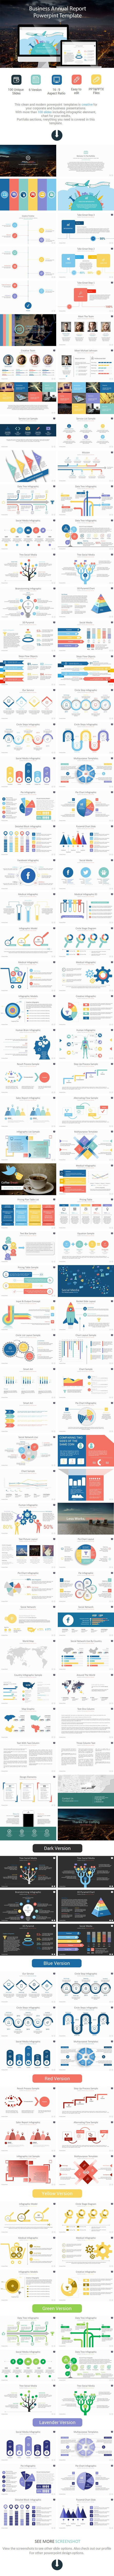 Business Annual Report Template powerpoint powerpointtemplate – Business Annual Report Template